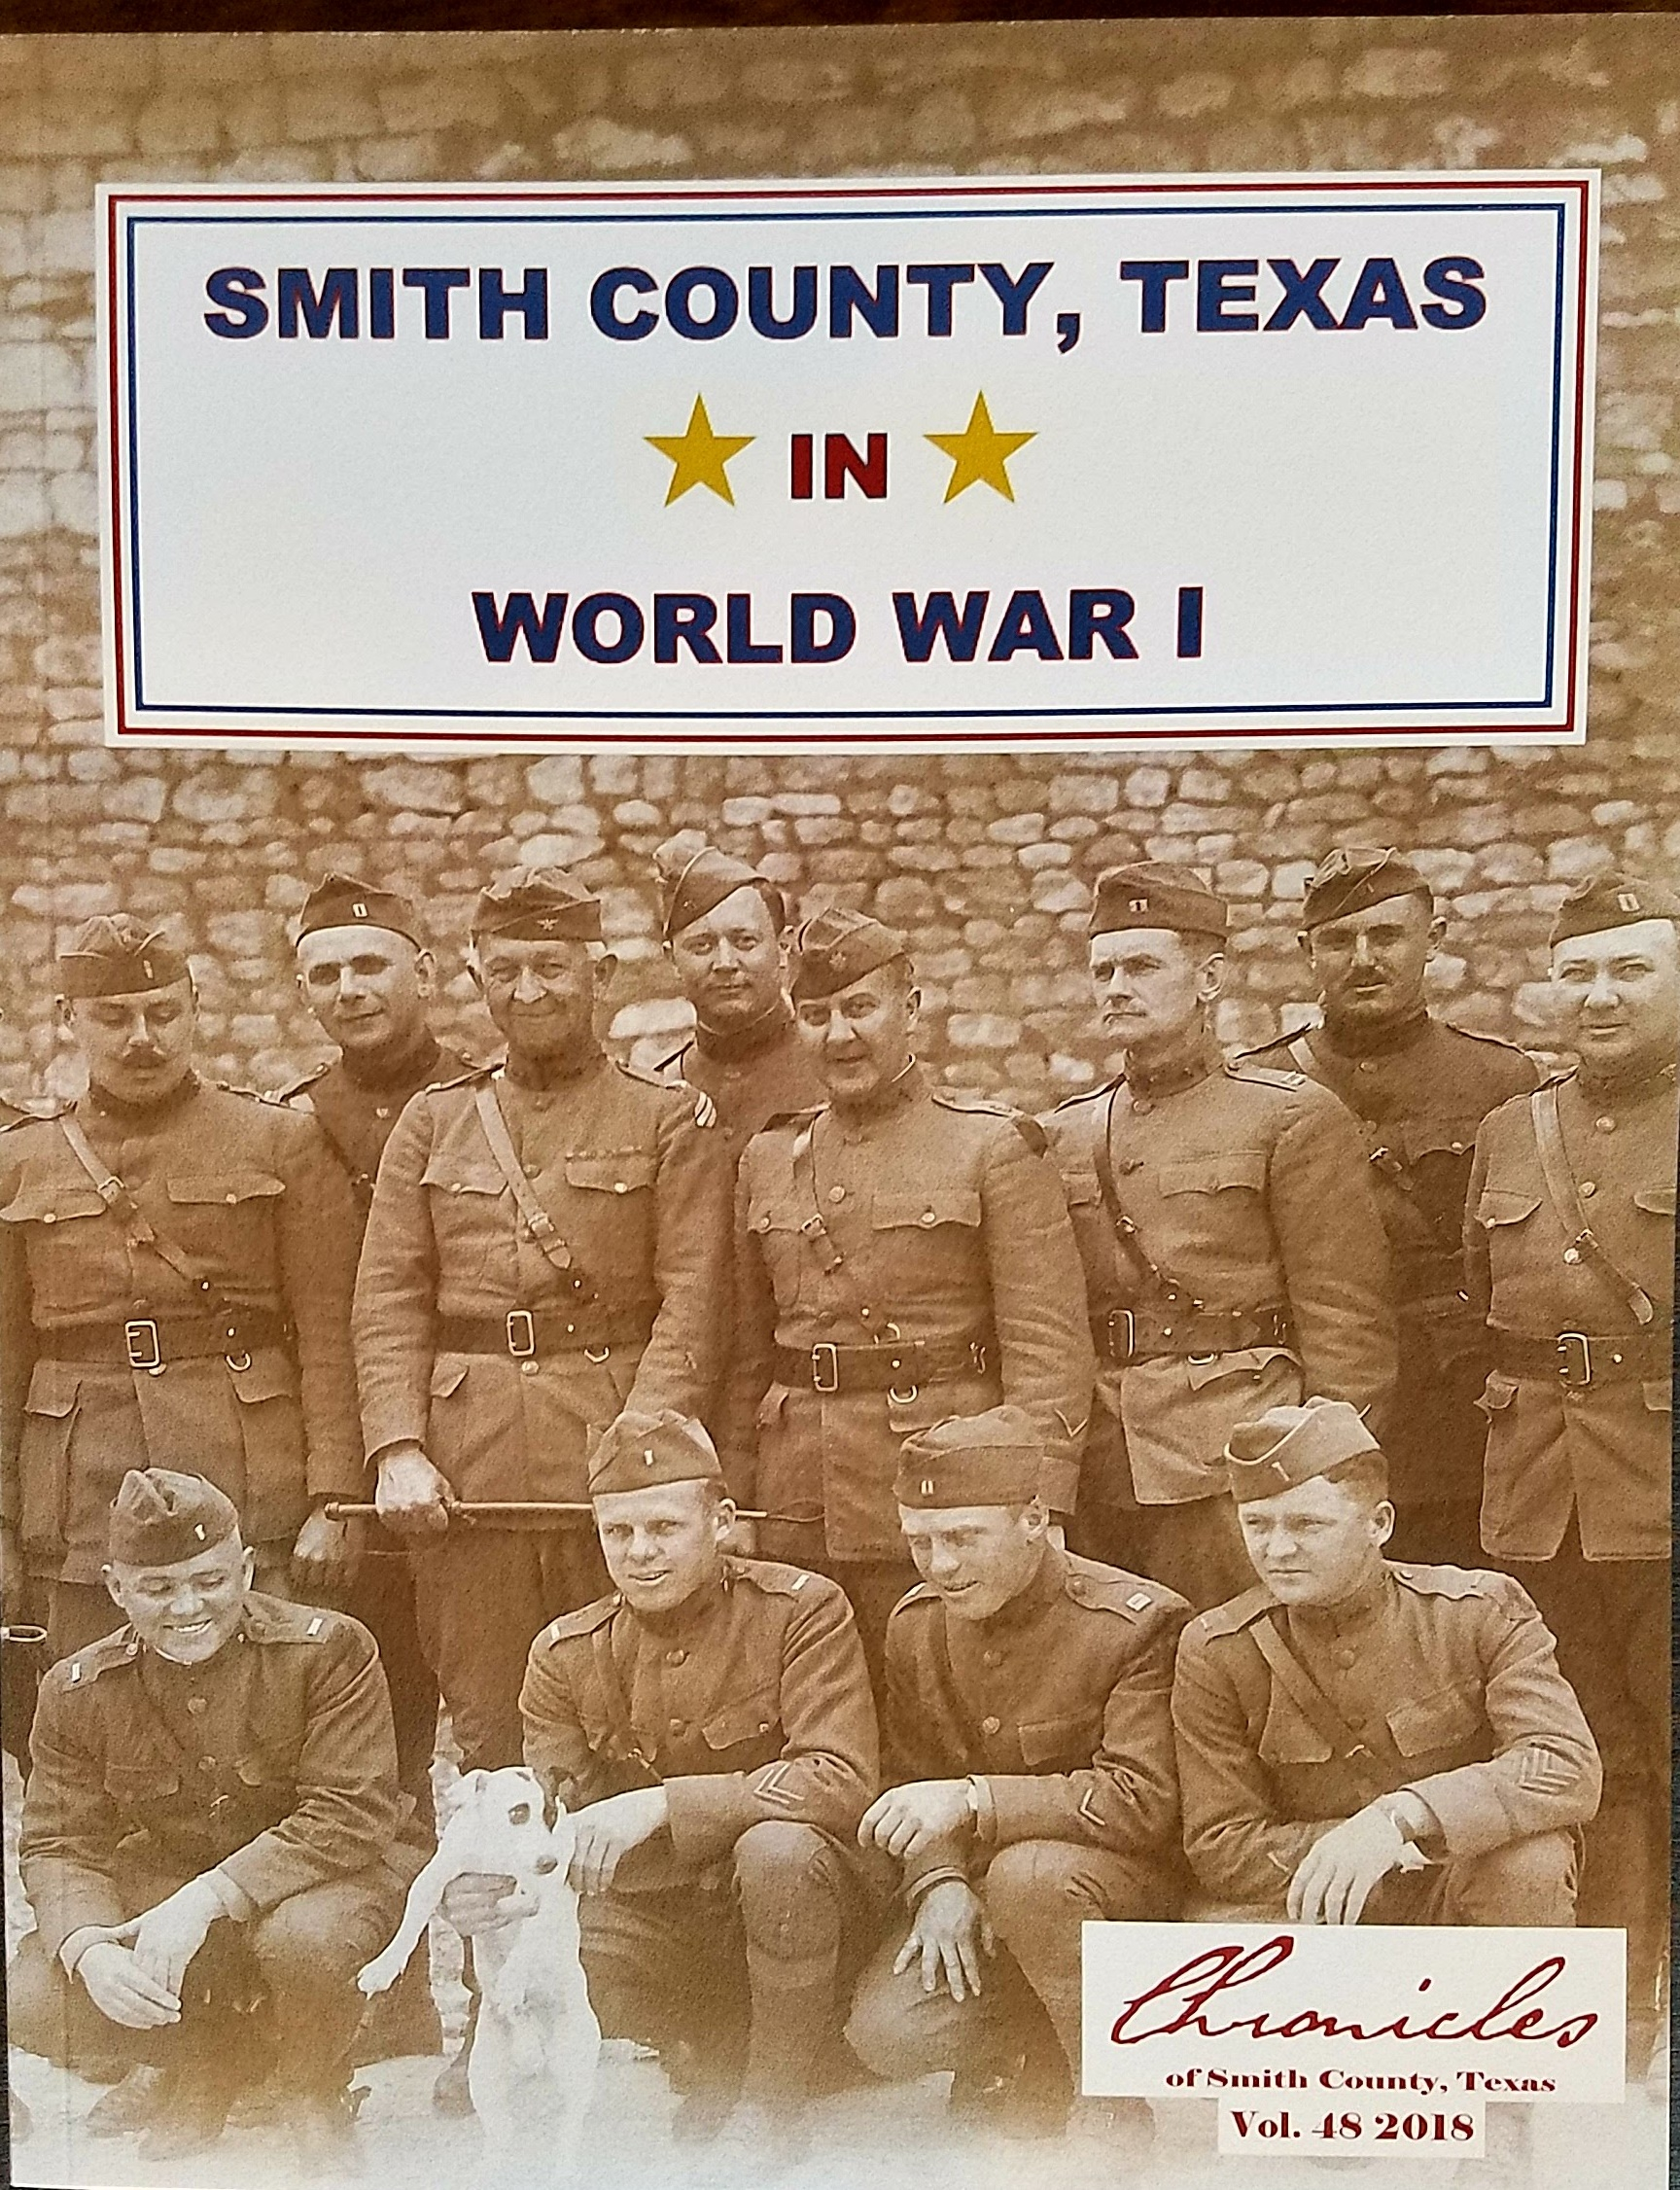 Chronicles of Smith County, Texas, Volume 48, 2018 - Smith County, Texas in World War I